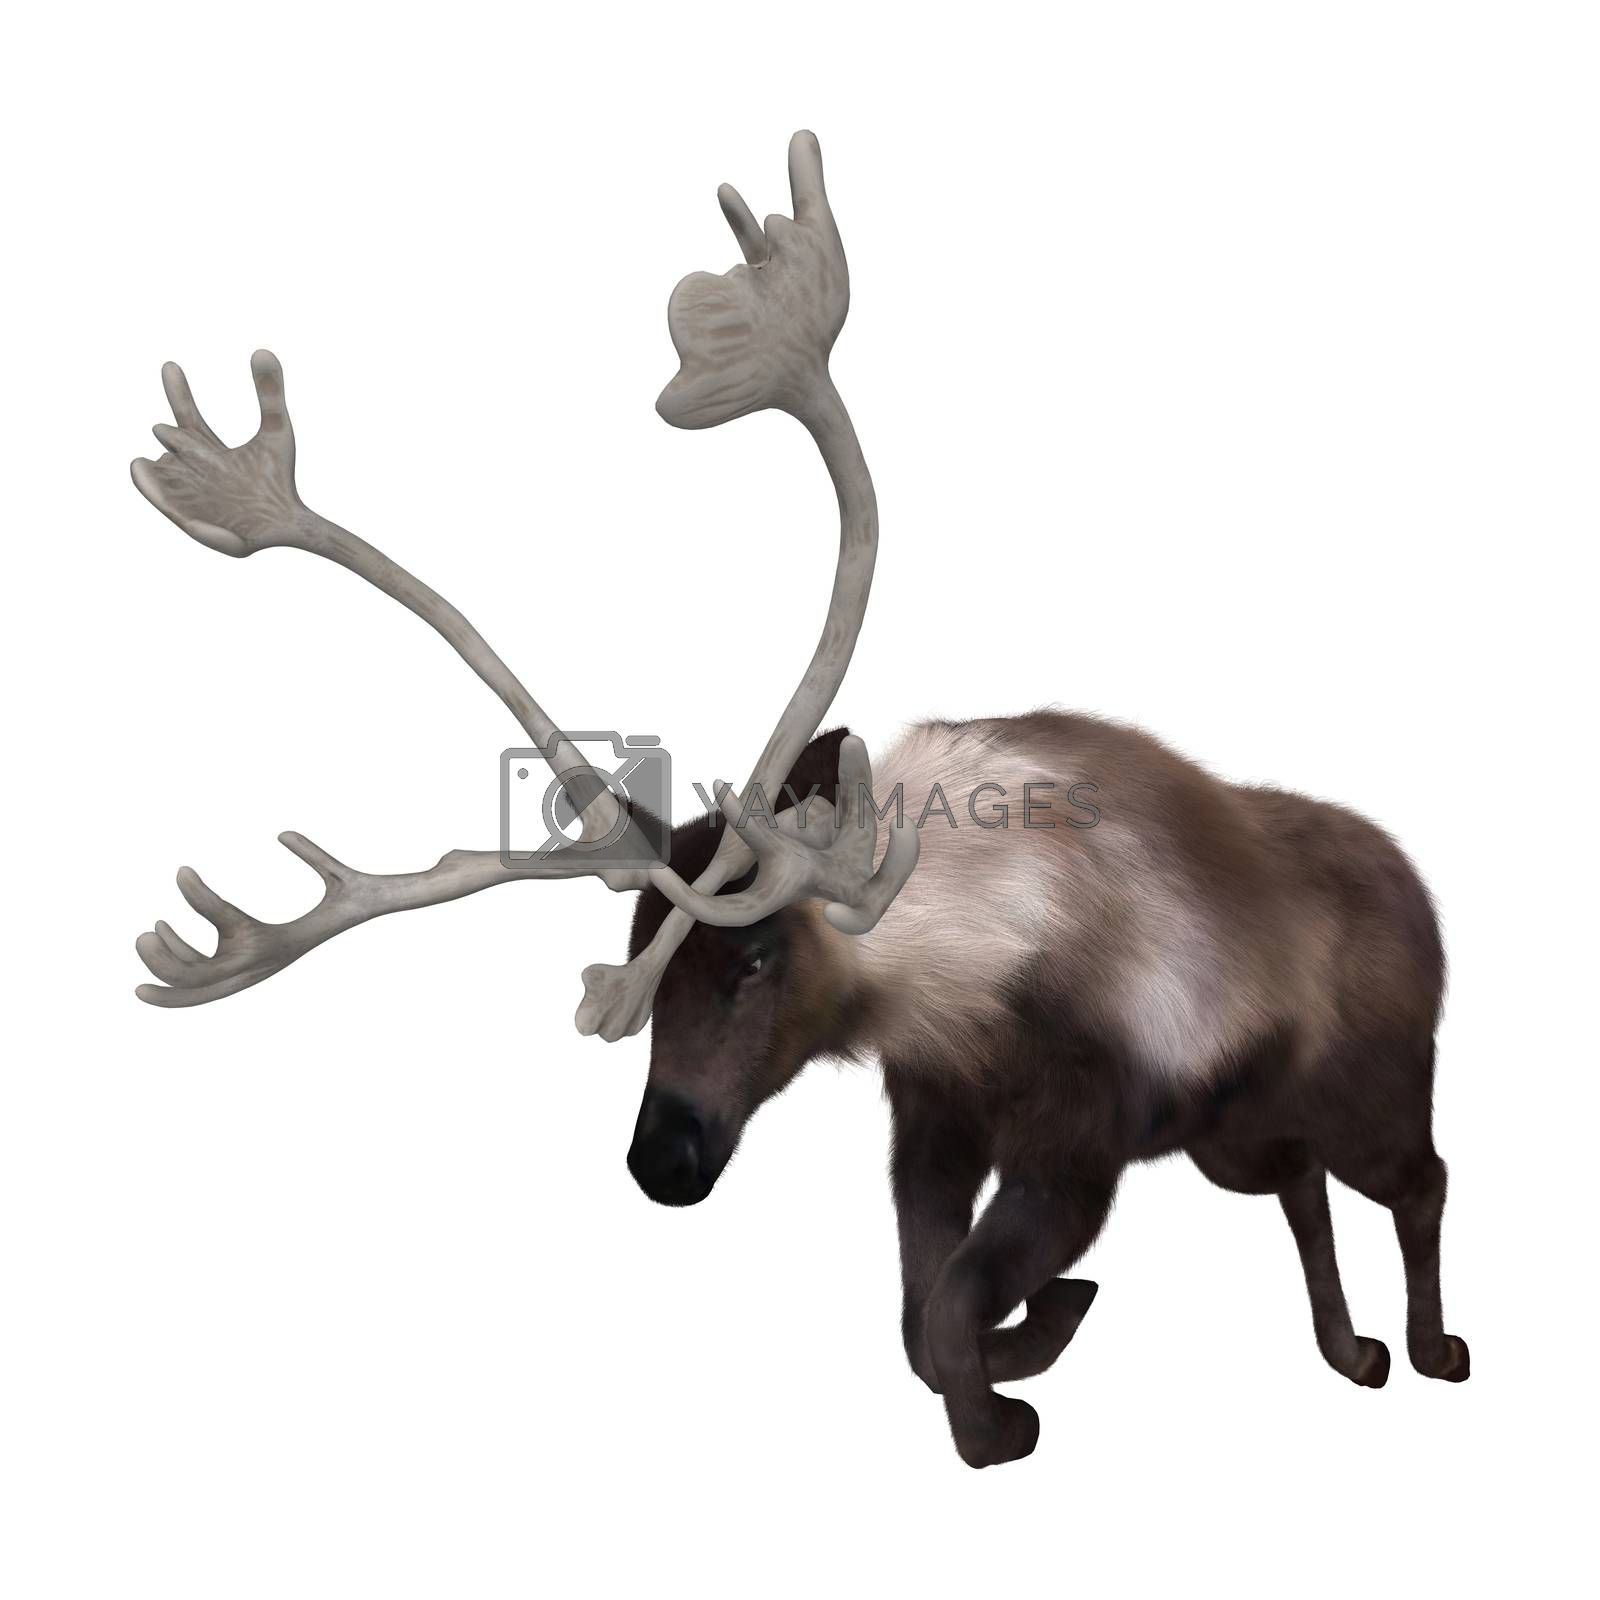 3D digital render of a caribou jumping isolated on white background